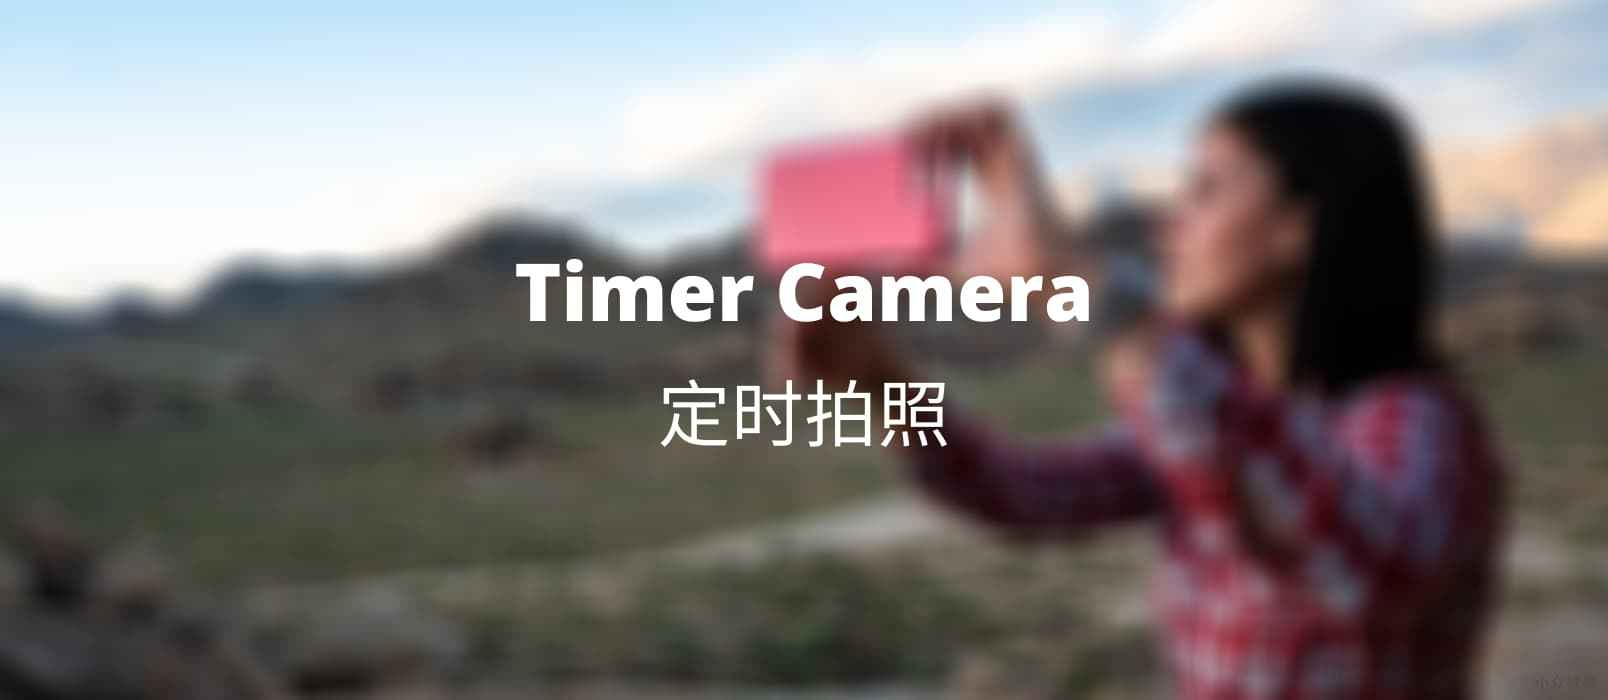 Timer Camera - 定时拍照应用[Android] 1